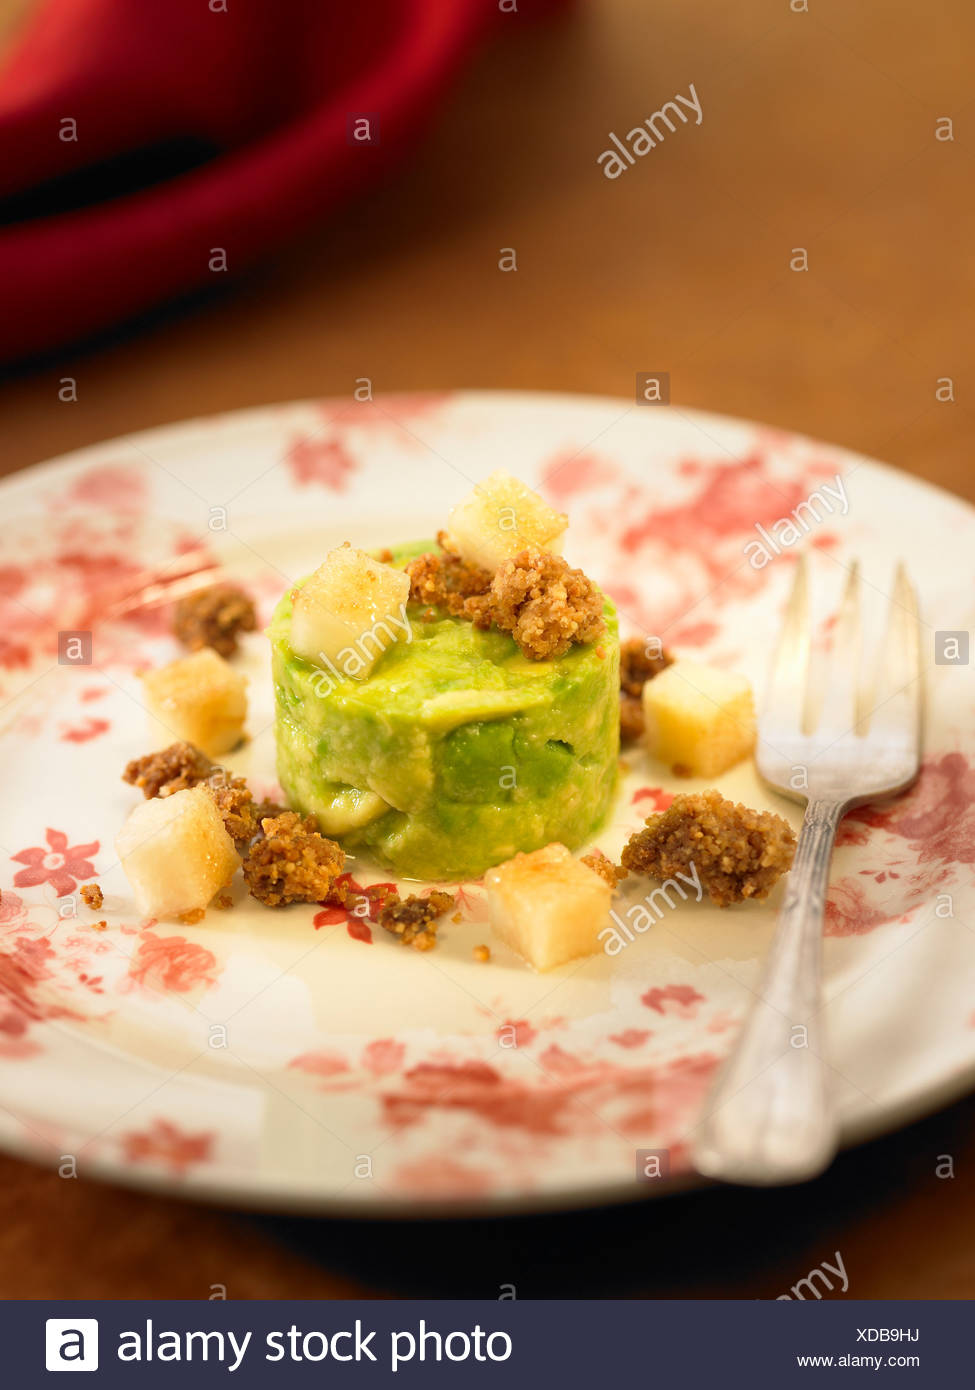 Avocado and citrus fruit tumbler with diced pears and lime juice - Stock Image